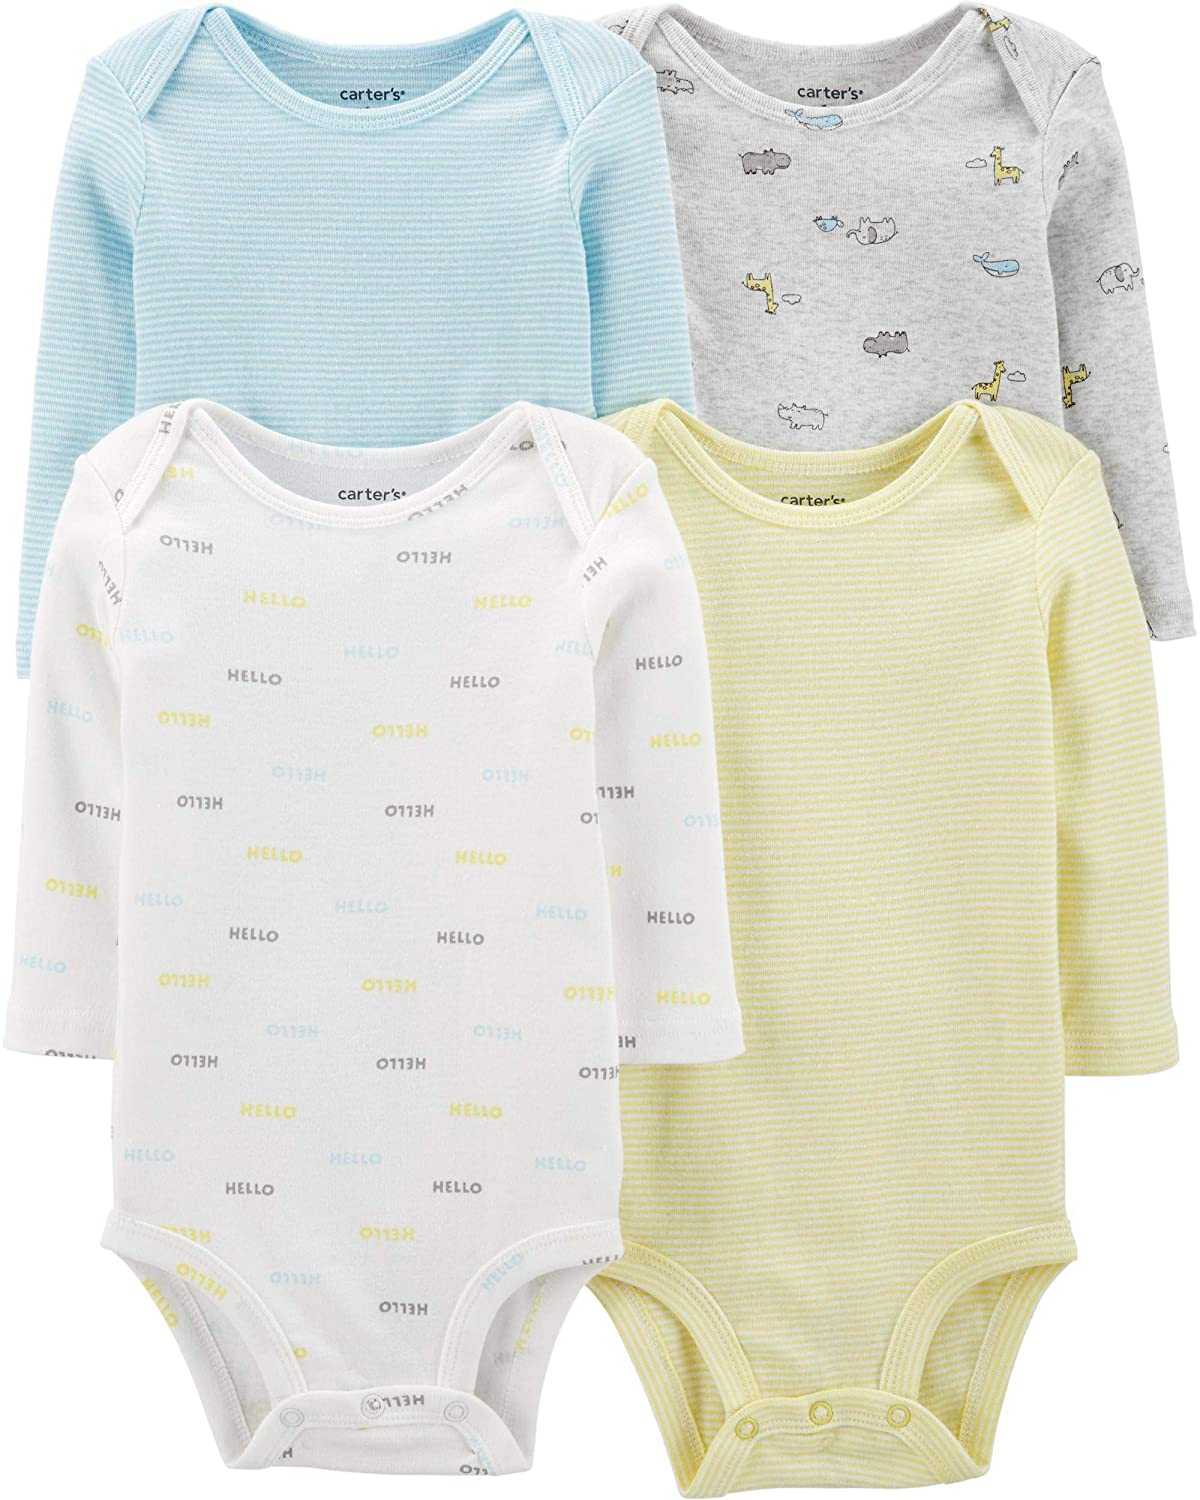 Carter's Unisex-Baby 4-Pack Long Sleeve Bodysuits (12 Months, Hello/Yellow/Blue)